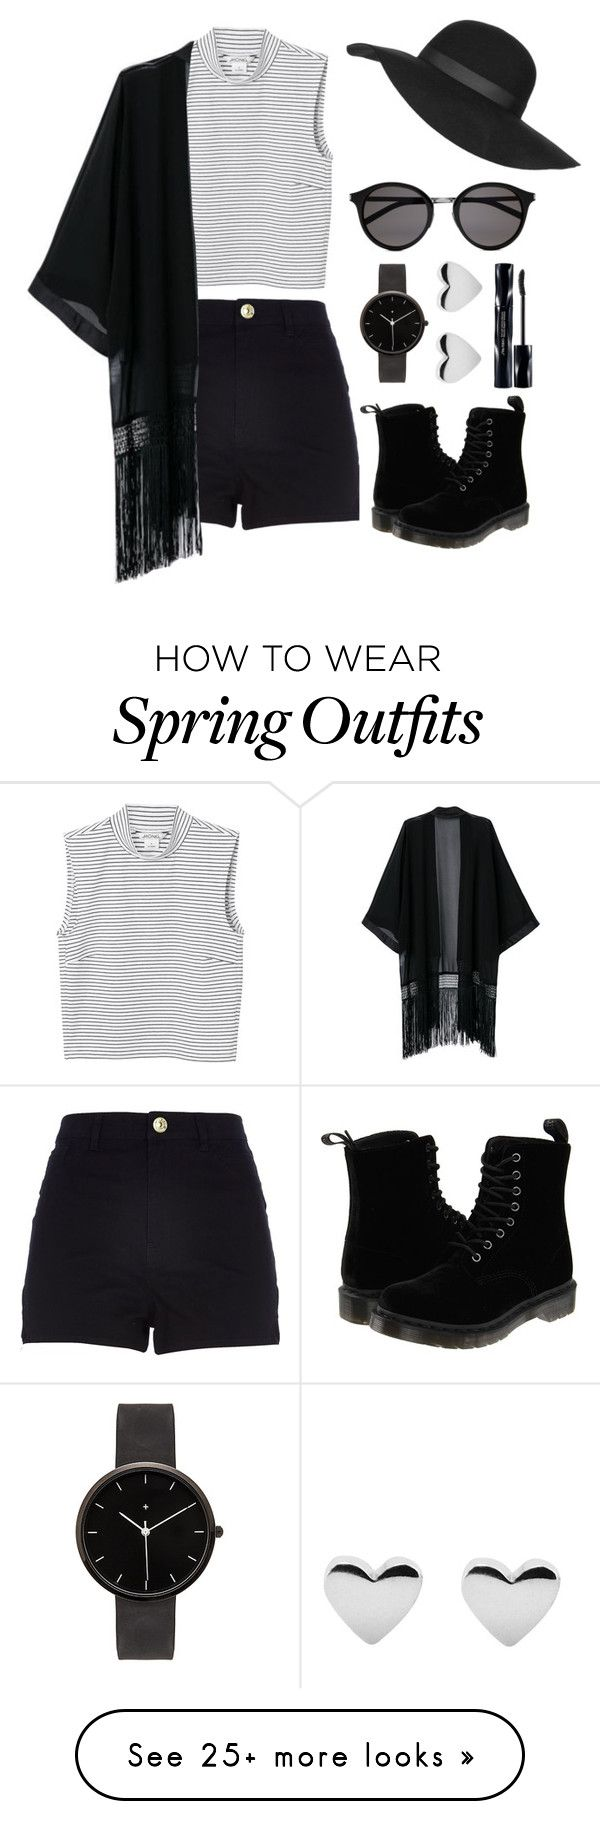 Spring Ouftits